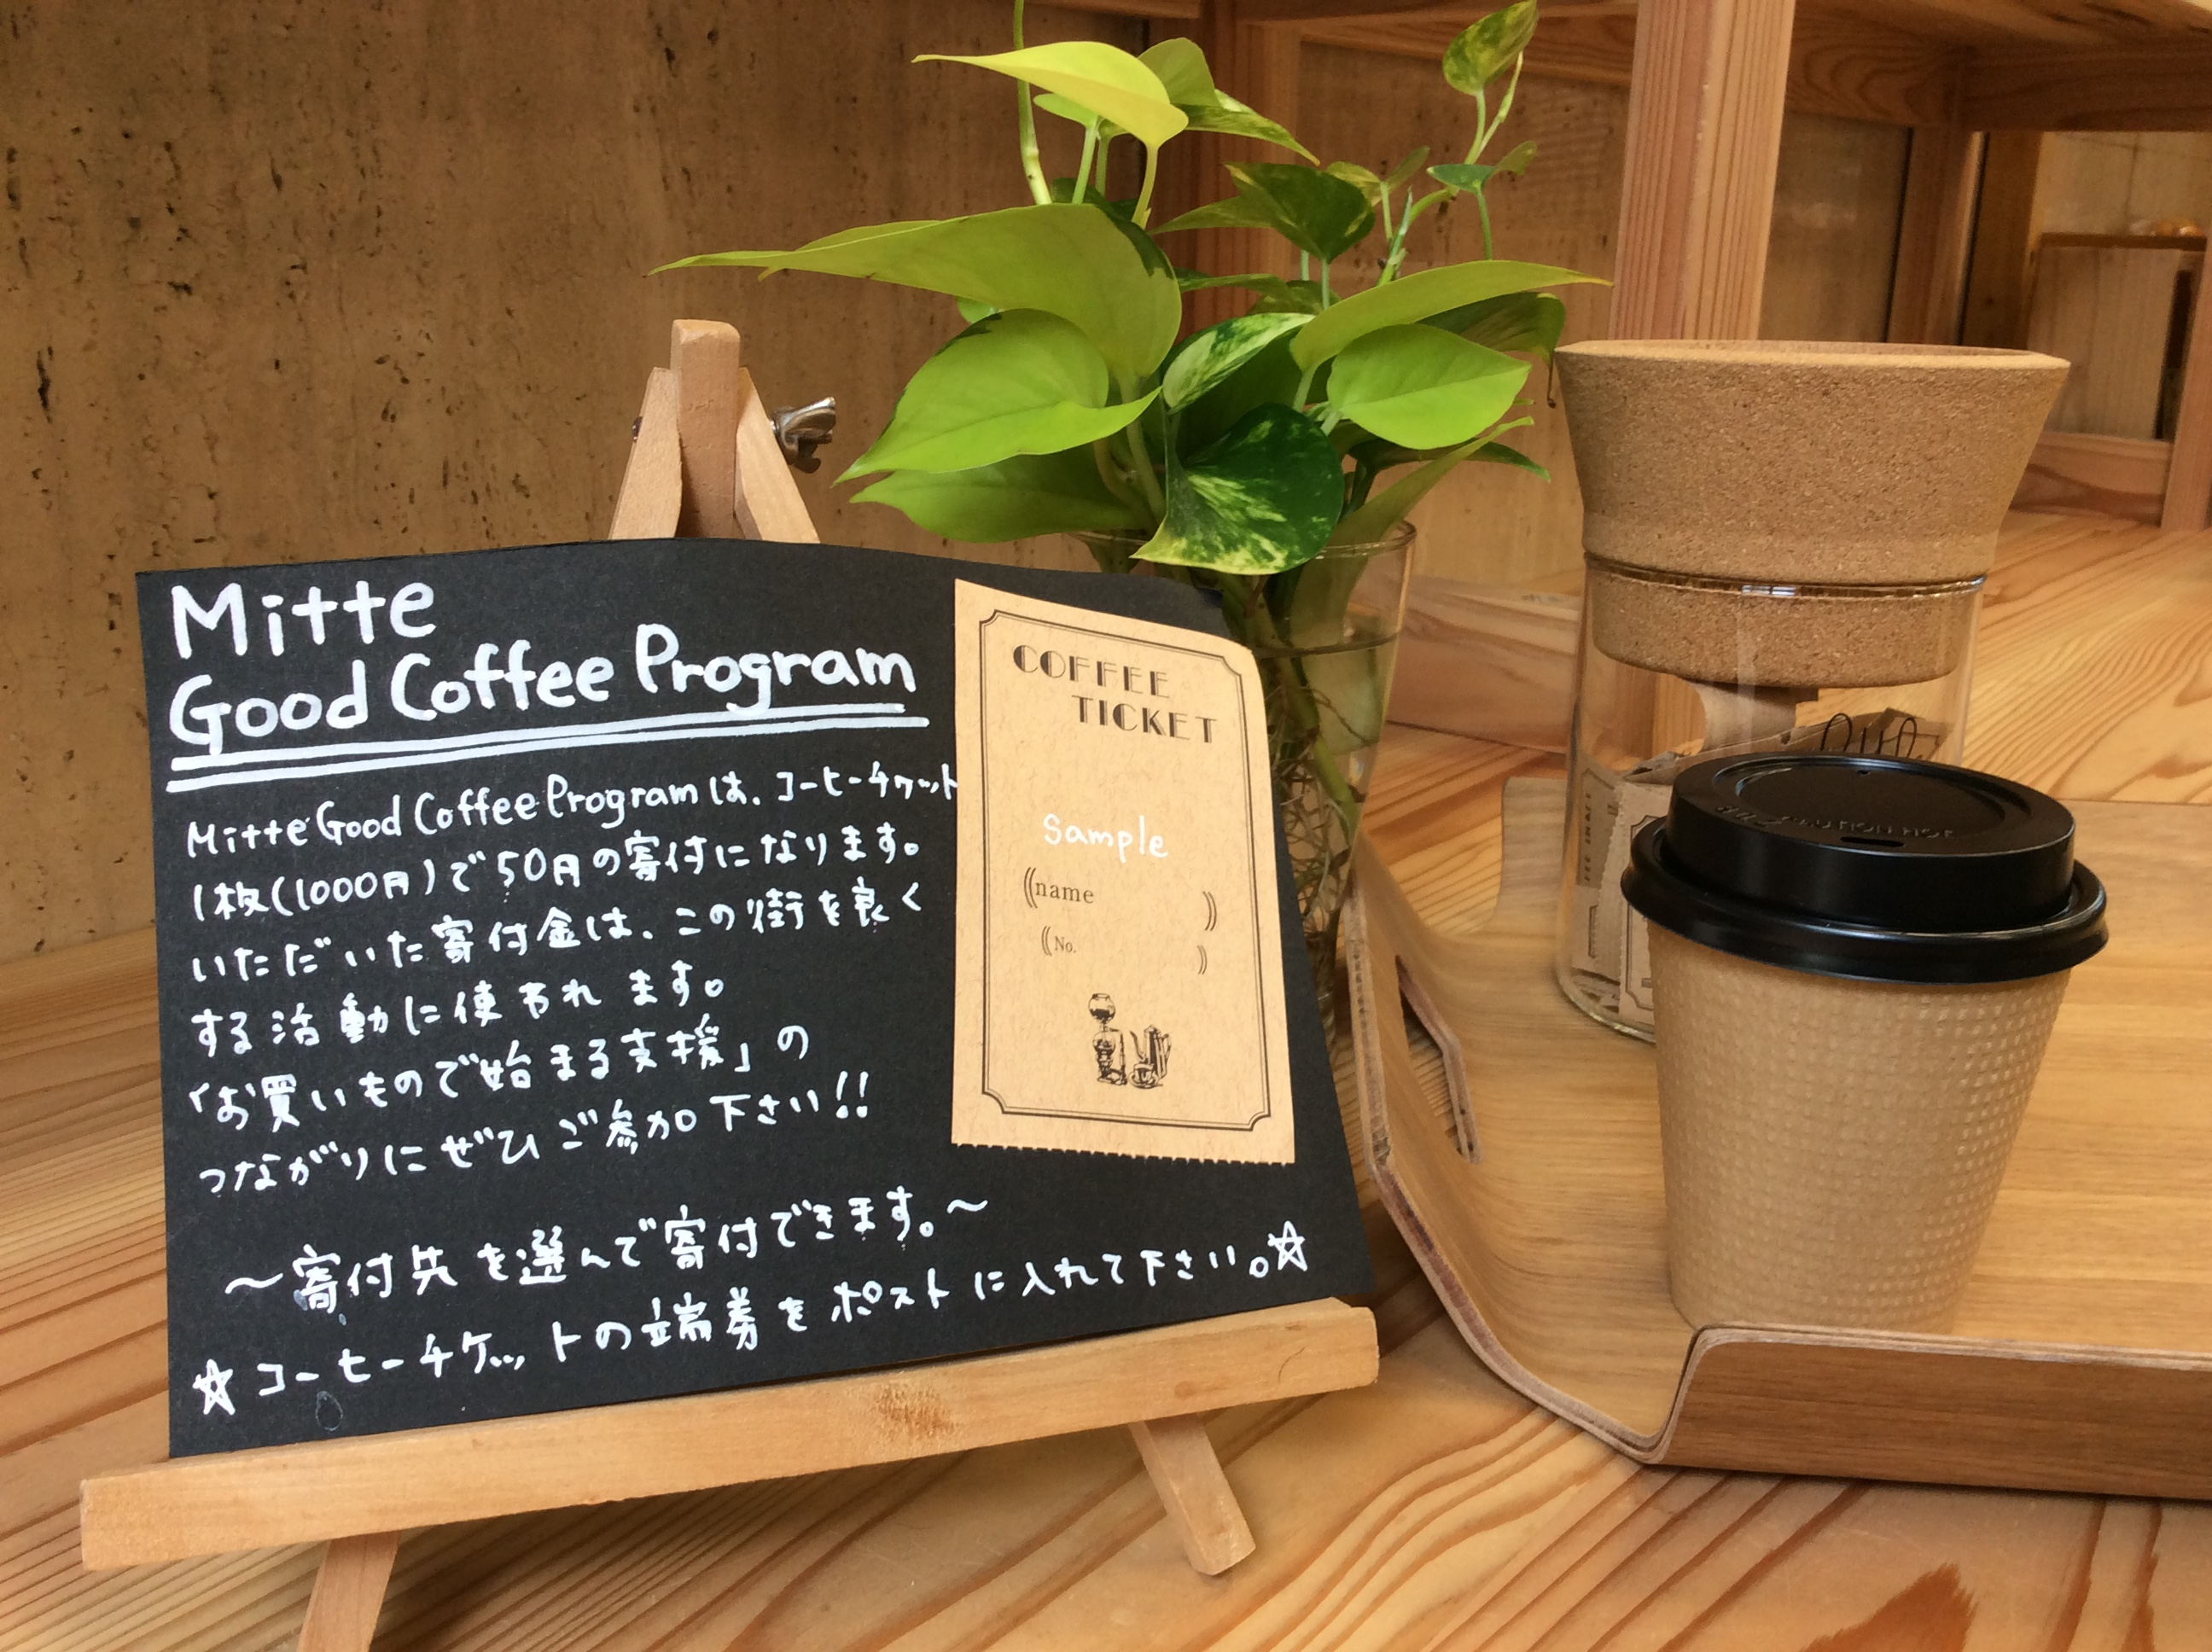 Mitte Good Coffee Program 2月のご報告